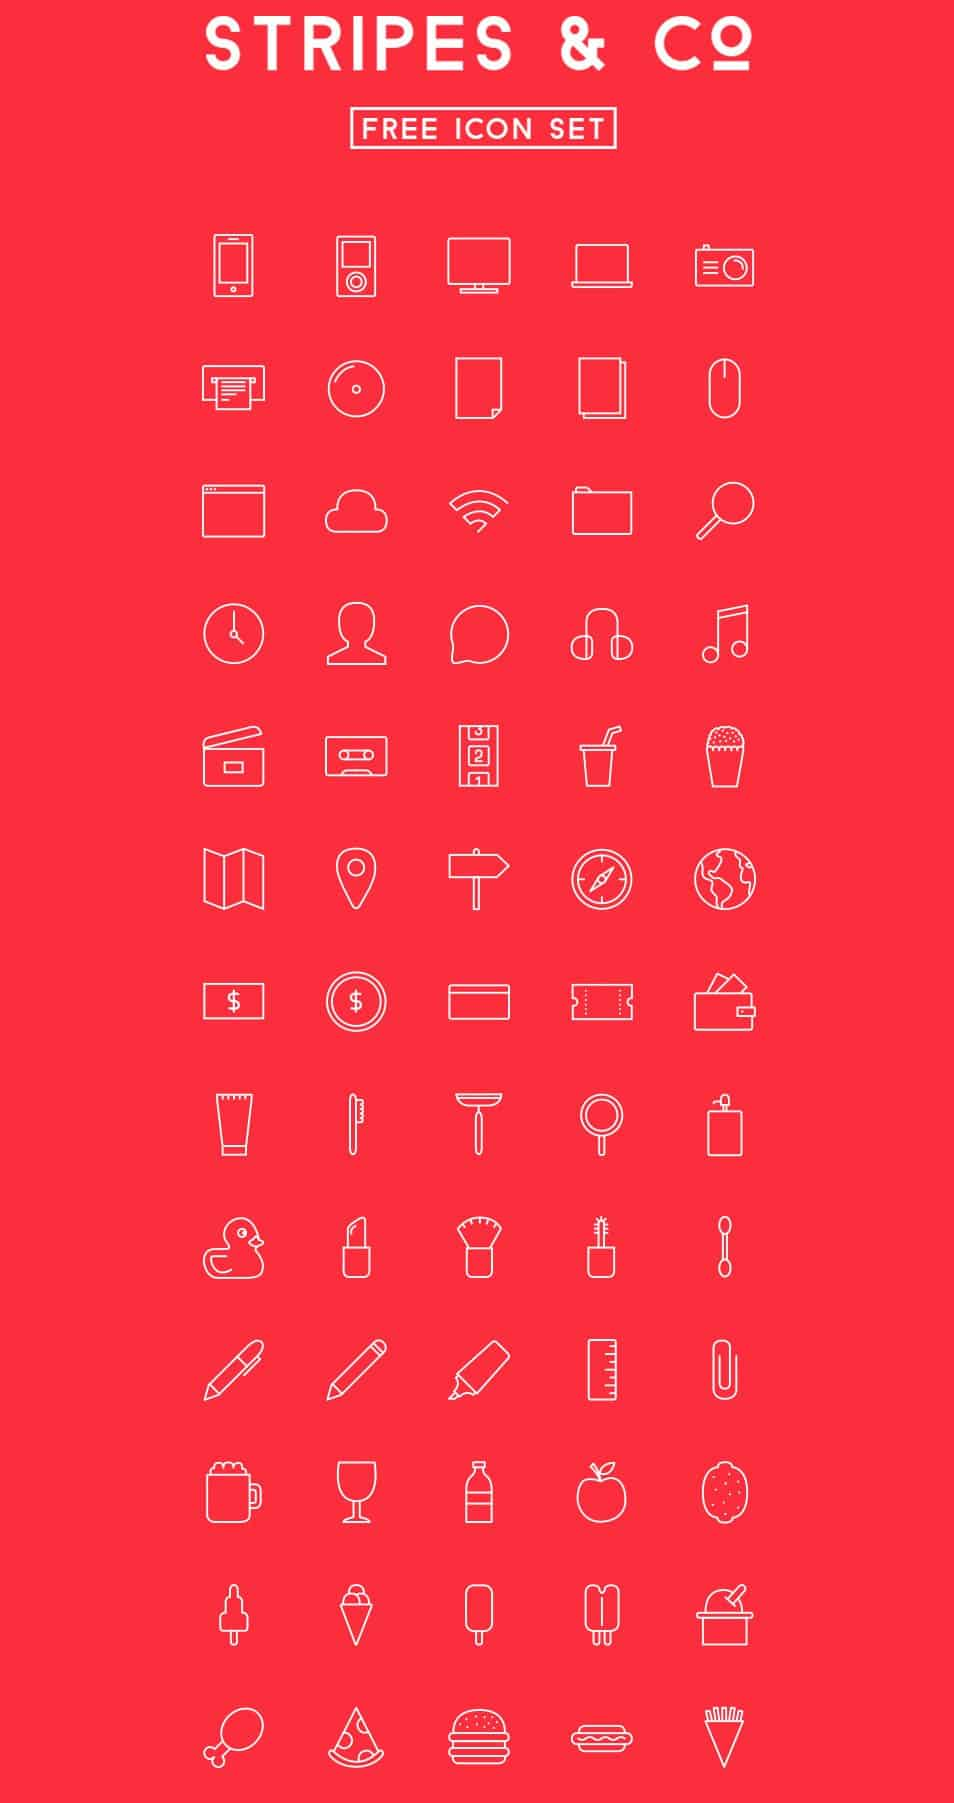 Stripes & Co – Free icon Set